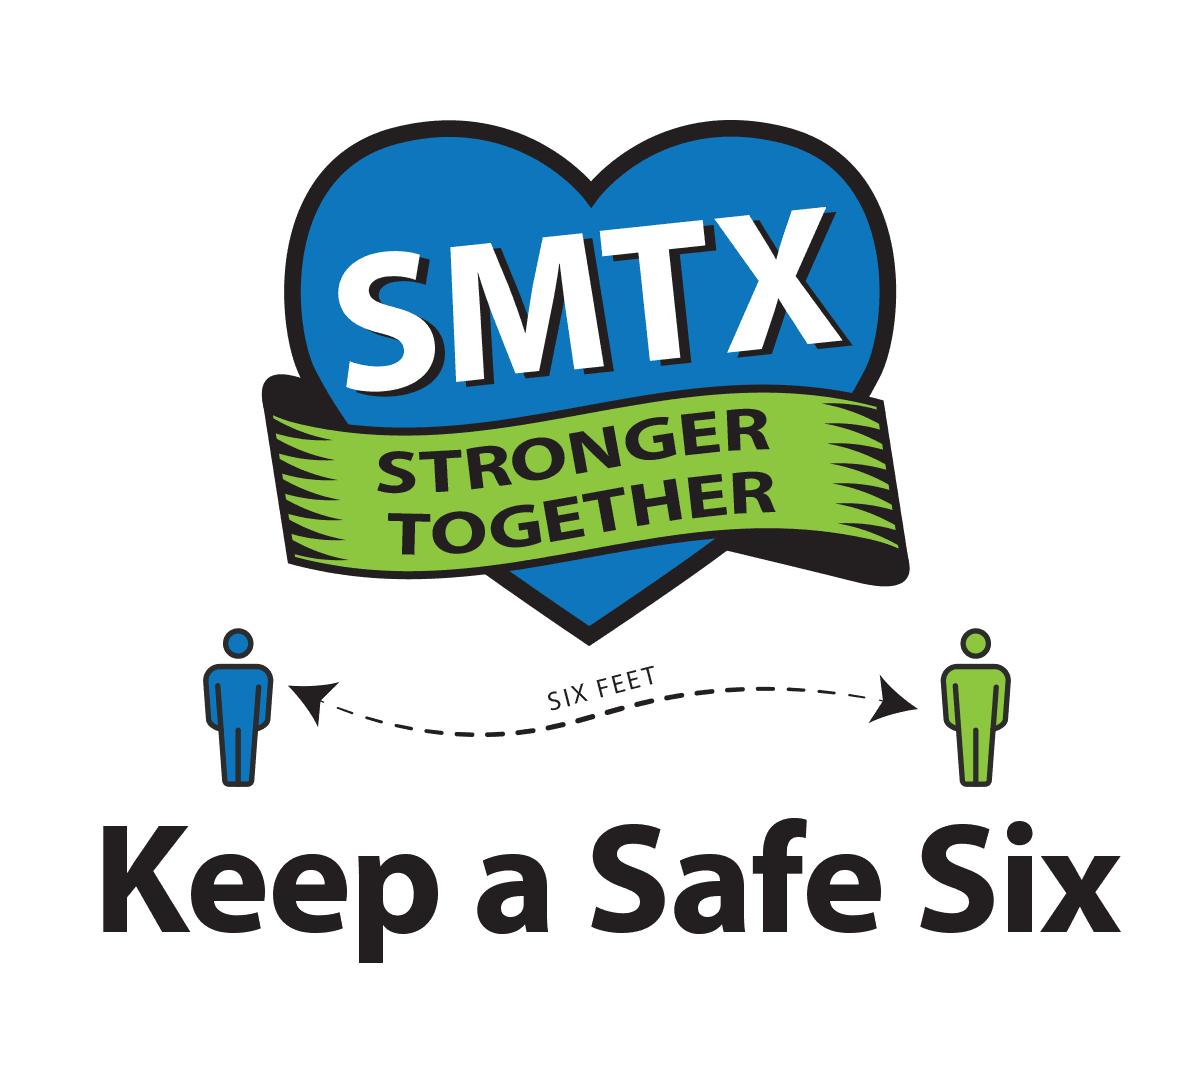 Public Health Advisory_Stay a Safe Six Apart